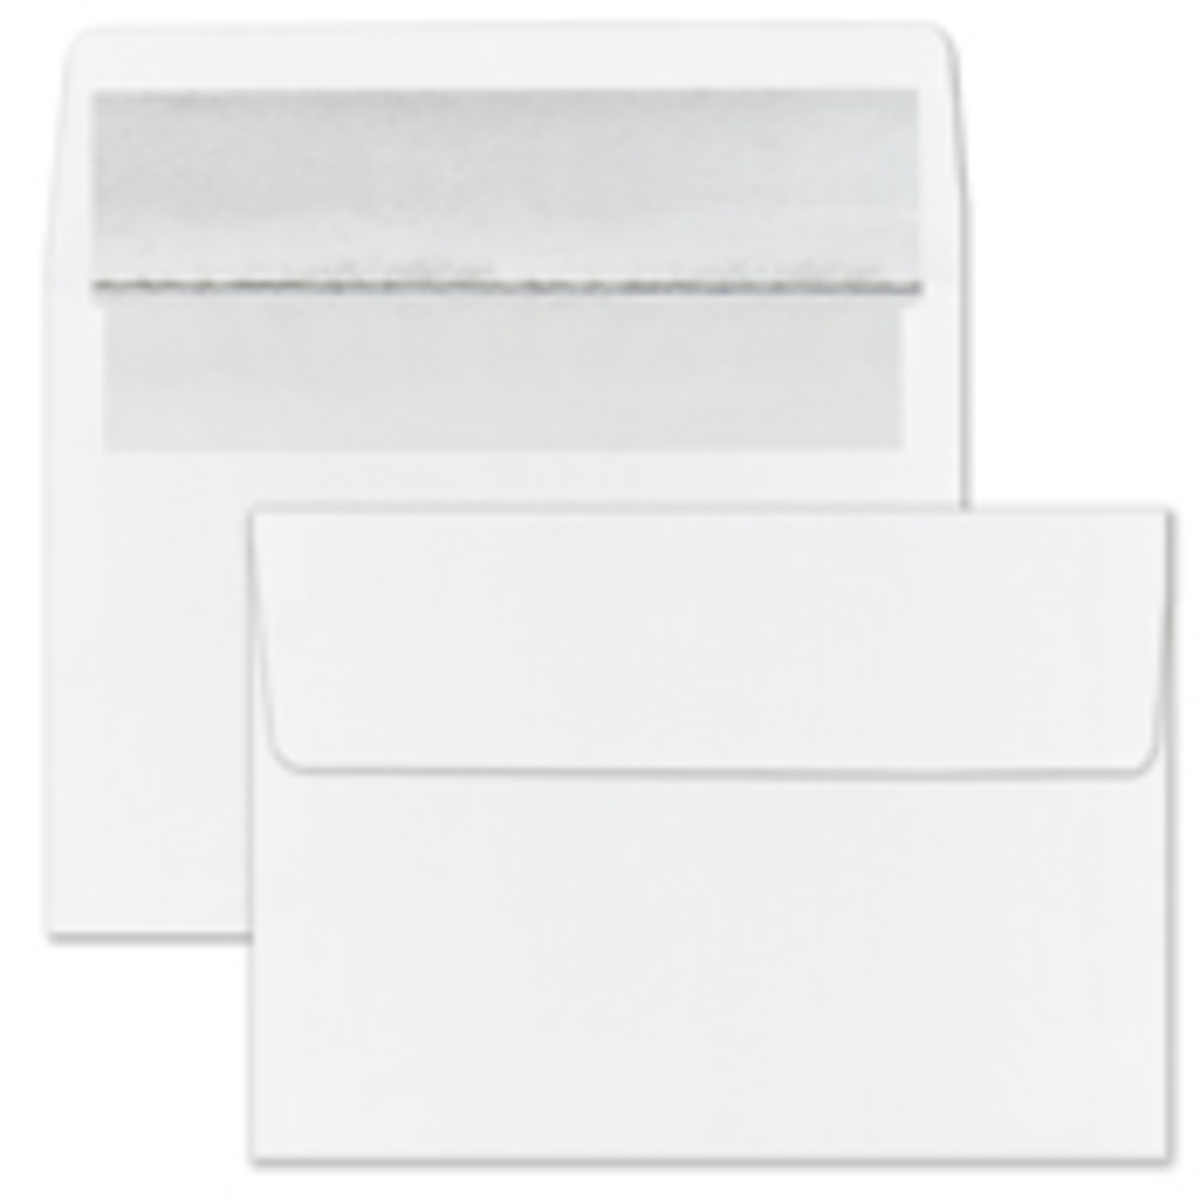 Recycled Silver Foil Lined White Envelope - Blank